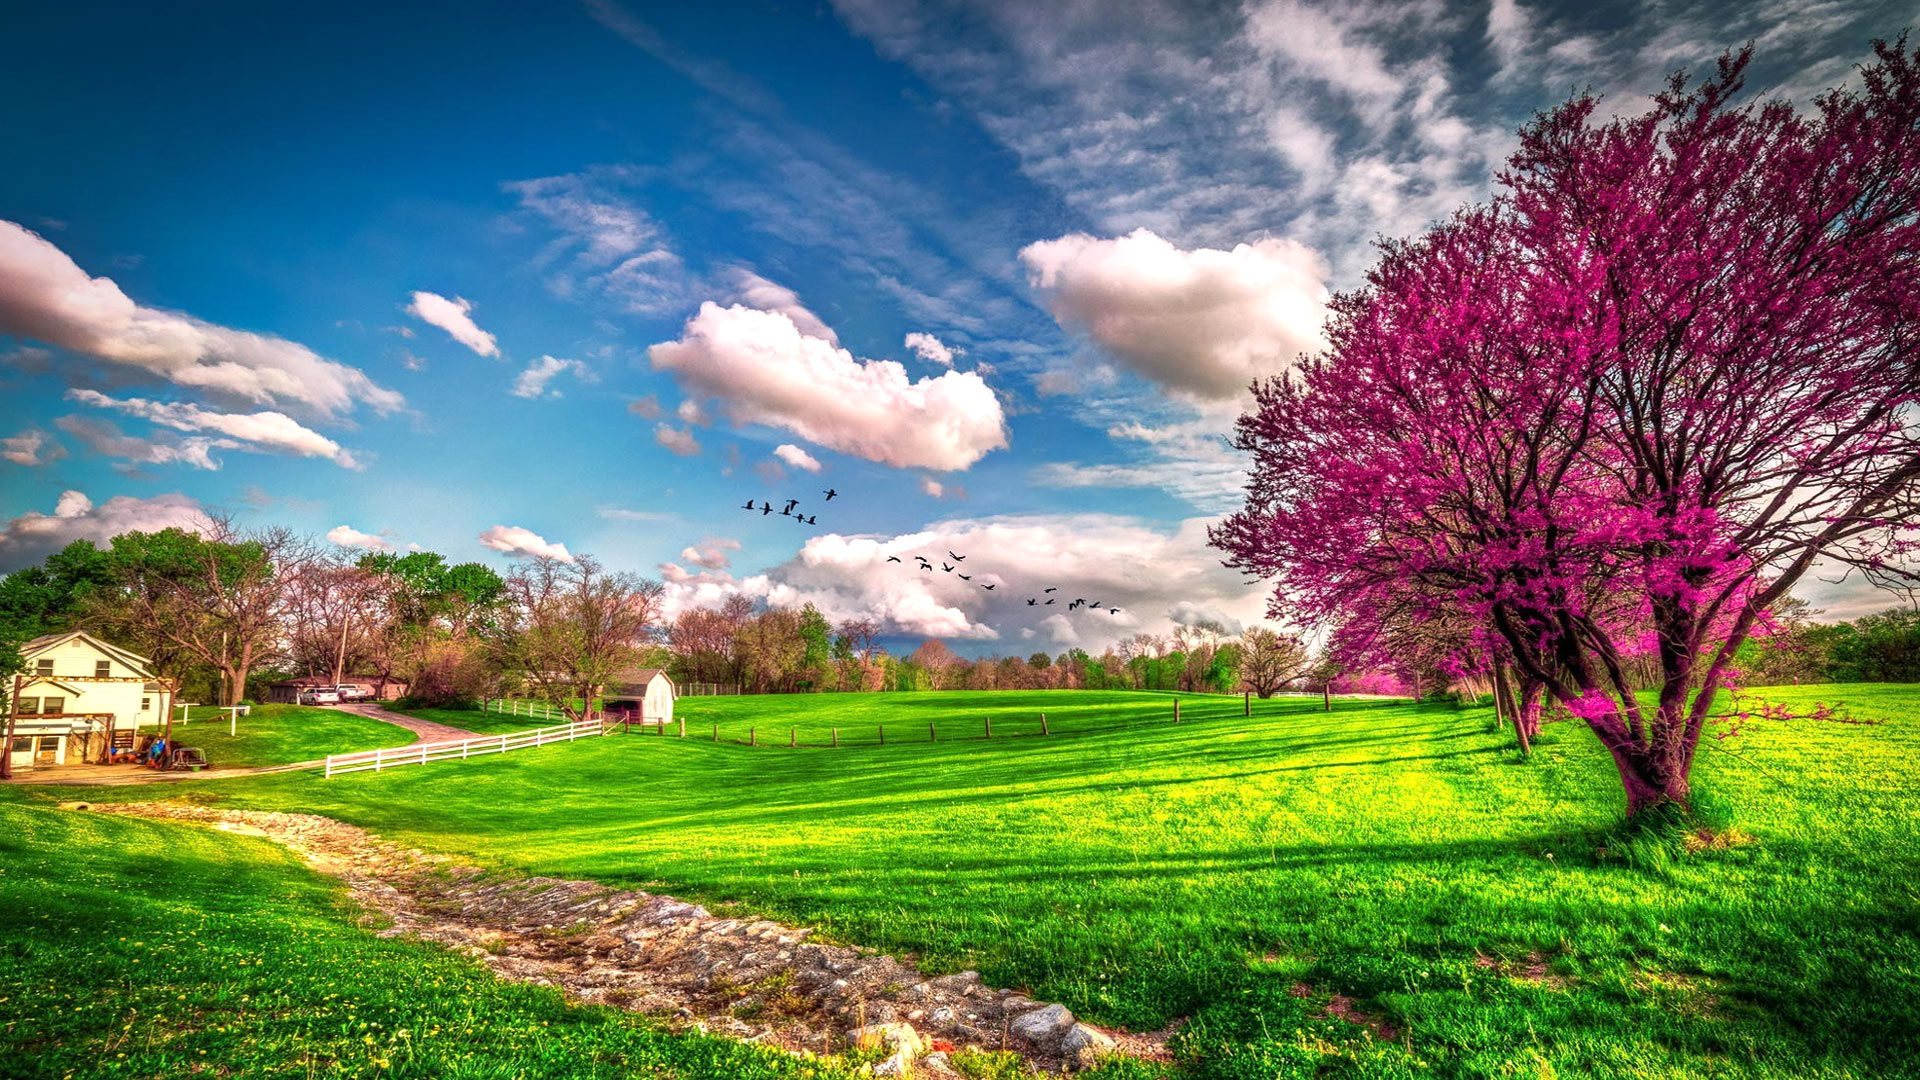 photography landscape earth spring field tree blossom house grass wallpaper